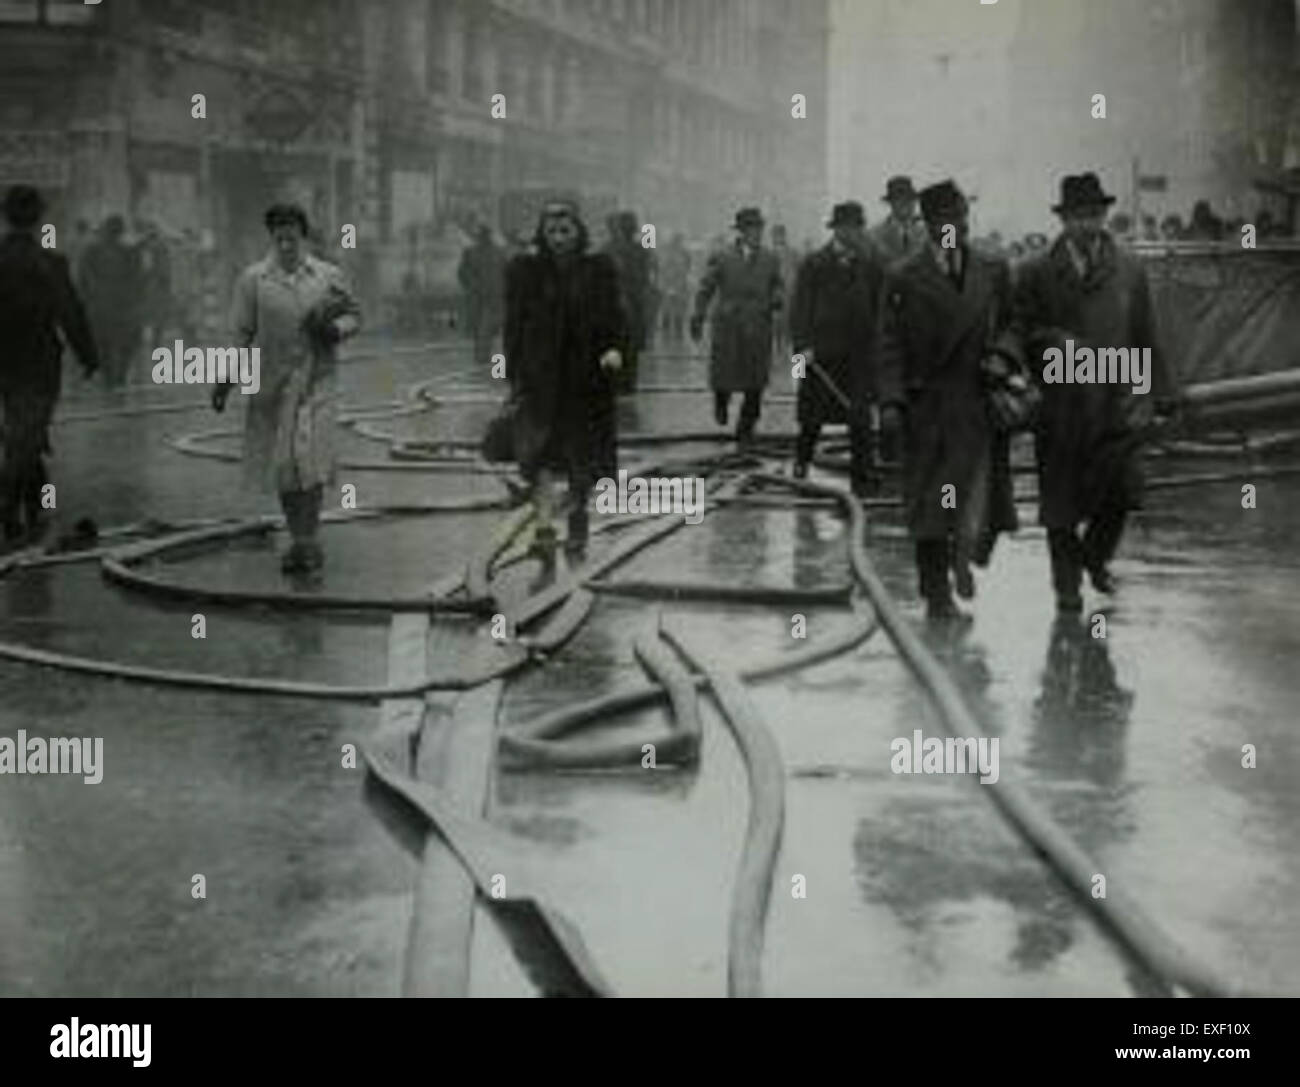 Voetgangers in Londen na bombardement - Stock Image